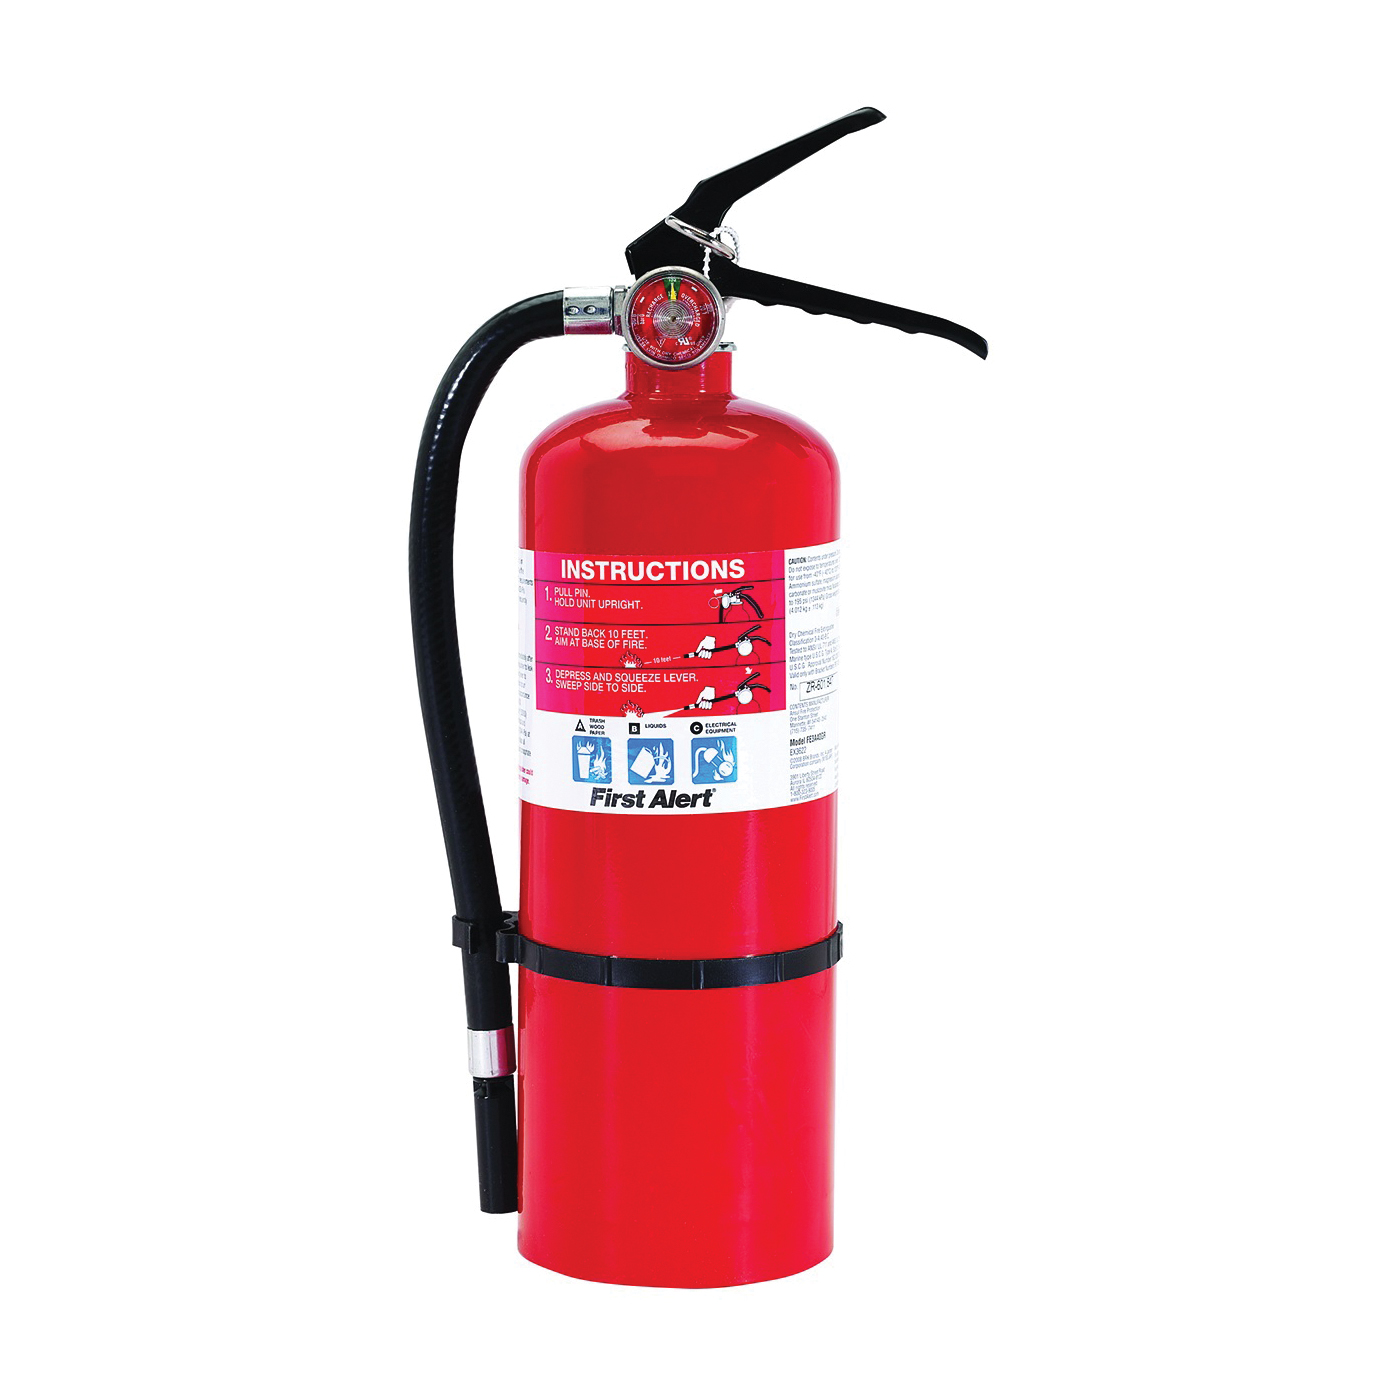 Picture of FIRST ALERT PRO5 Fire Extinguisher, 5 lb Capacity, Monoammonium Phosphate, 3-A:40-B:C Class, Wall Mounting